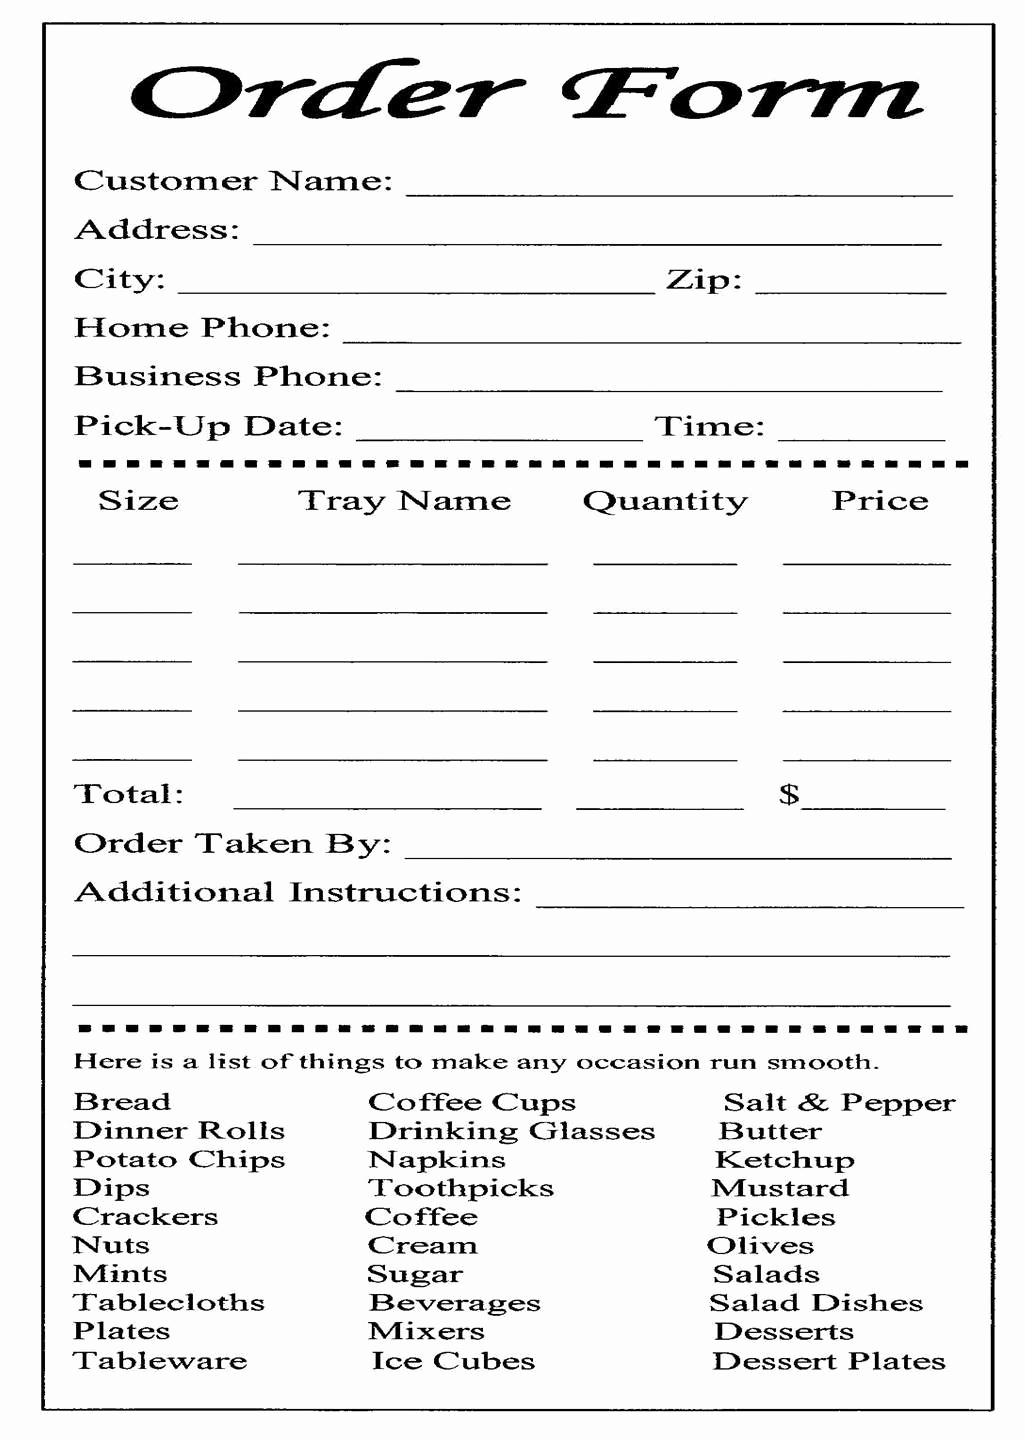 Printable order form Template Lovely Cake Ball order form Templates Free